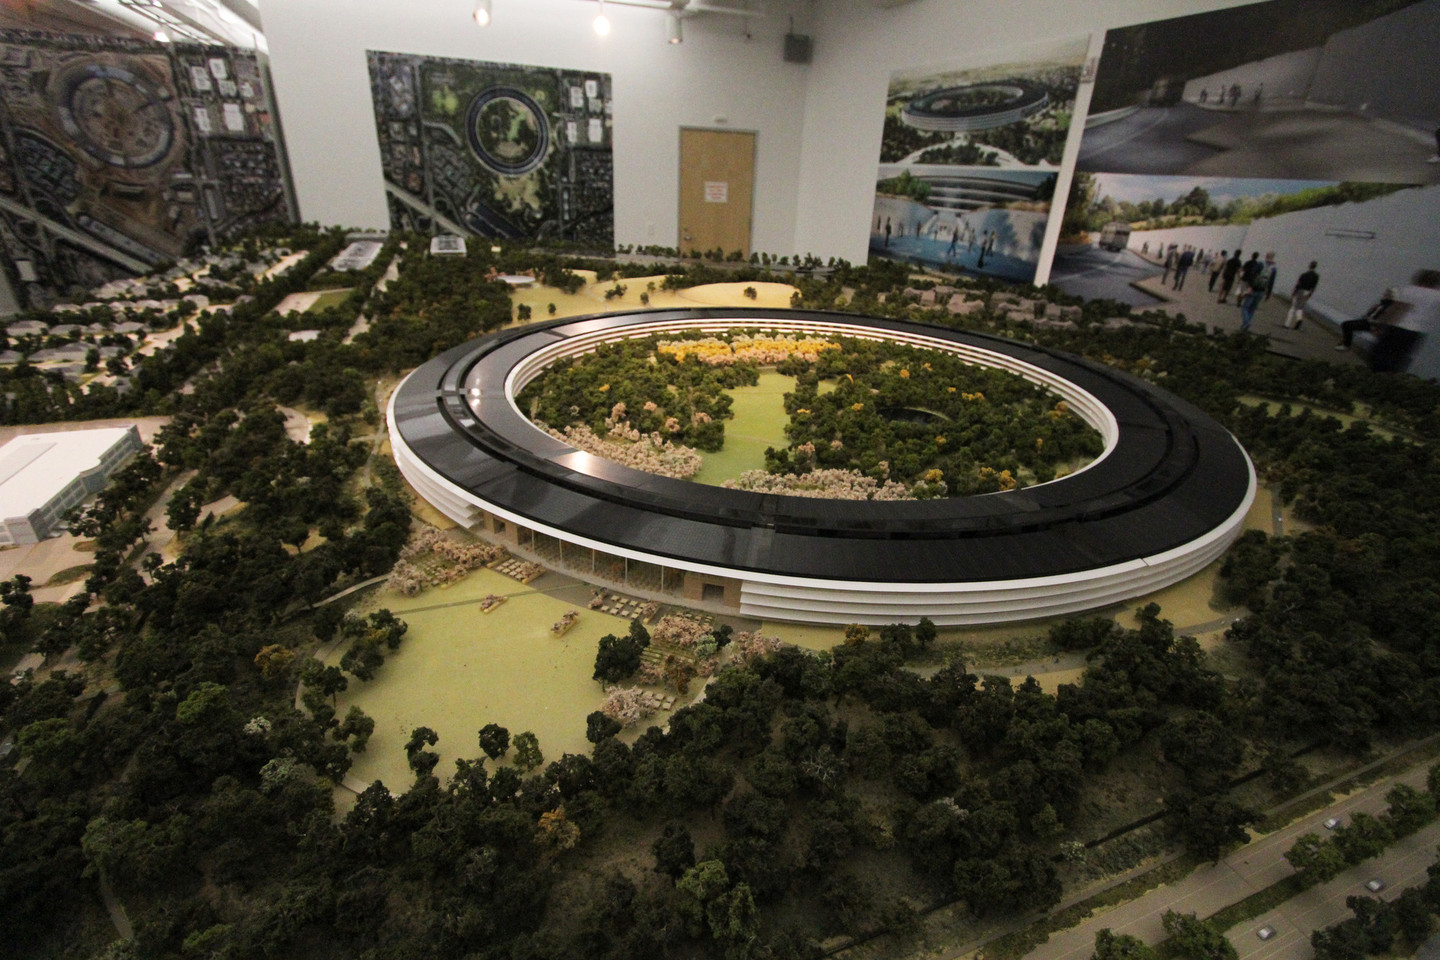 Apple has a room-size model of the new campus in a building on site of the construction zone. (Anya Schultz/KQED)